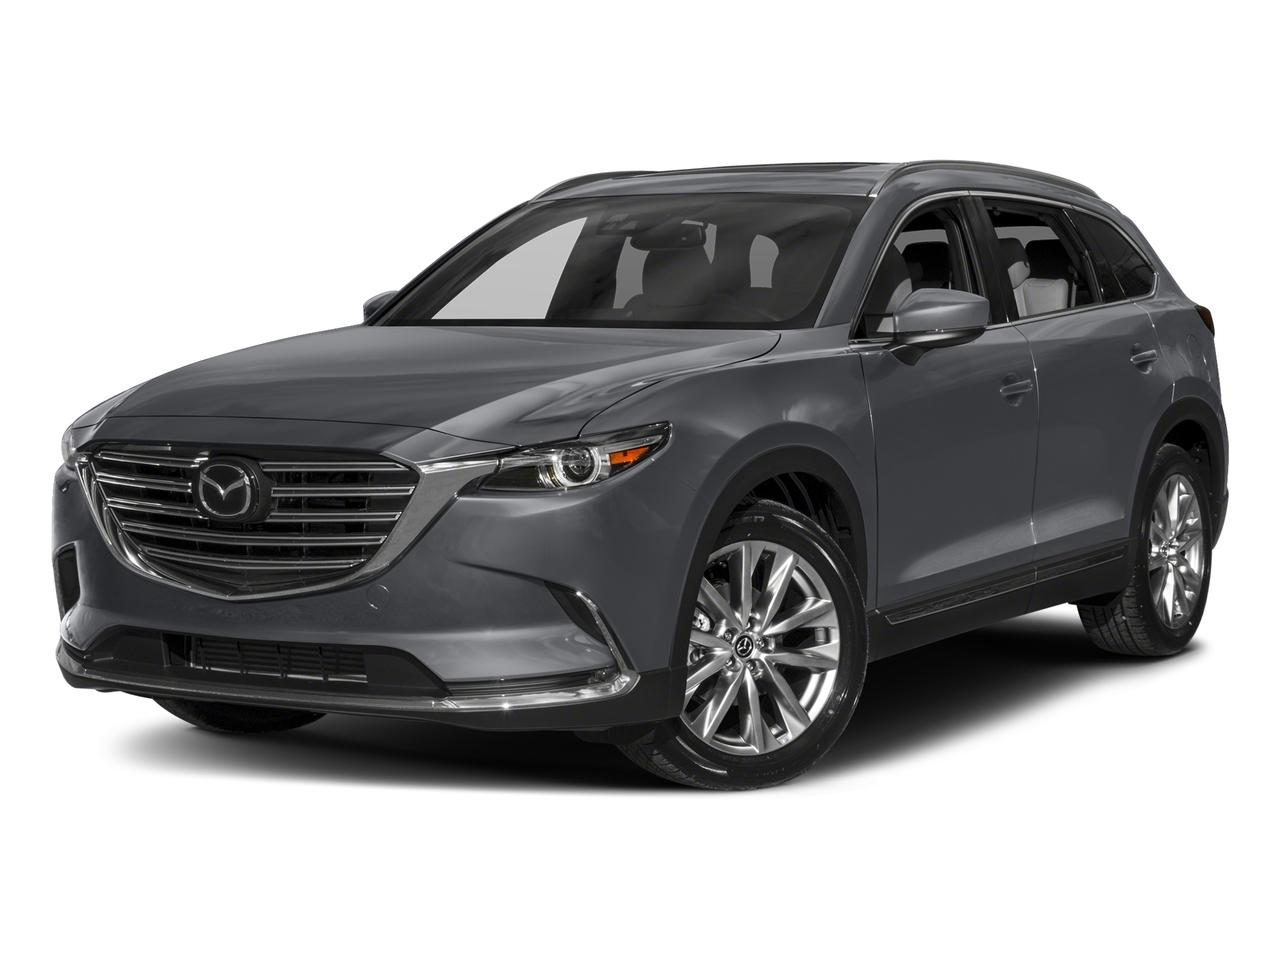 2016 Mazda CX-9 Vehicle Photo in Allentown, PA 18103